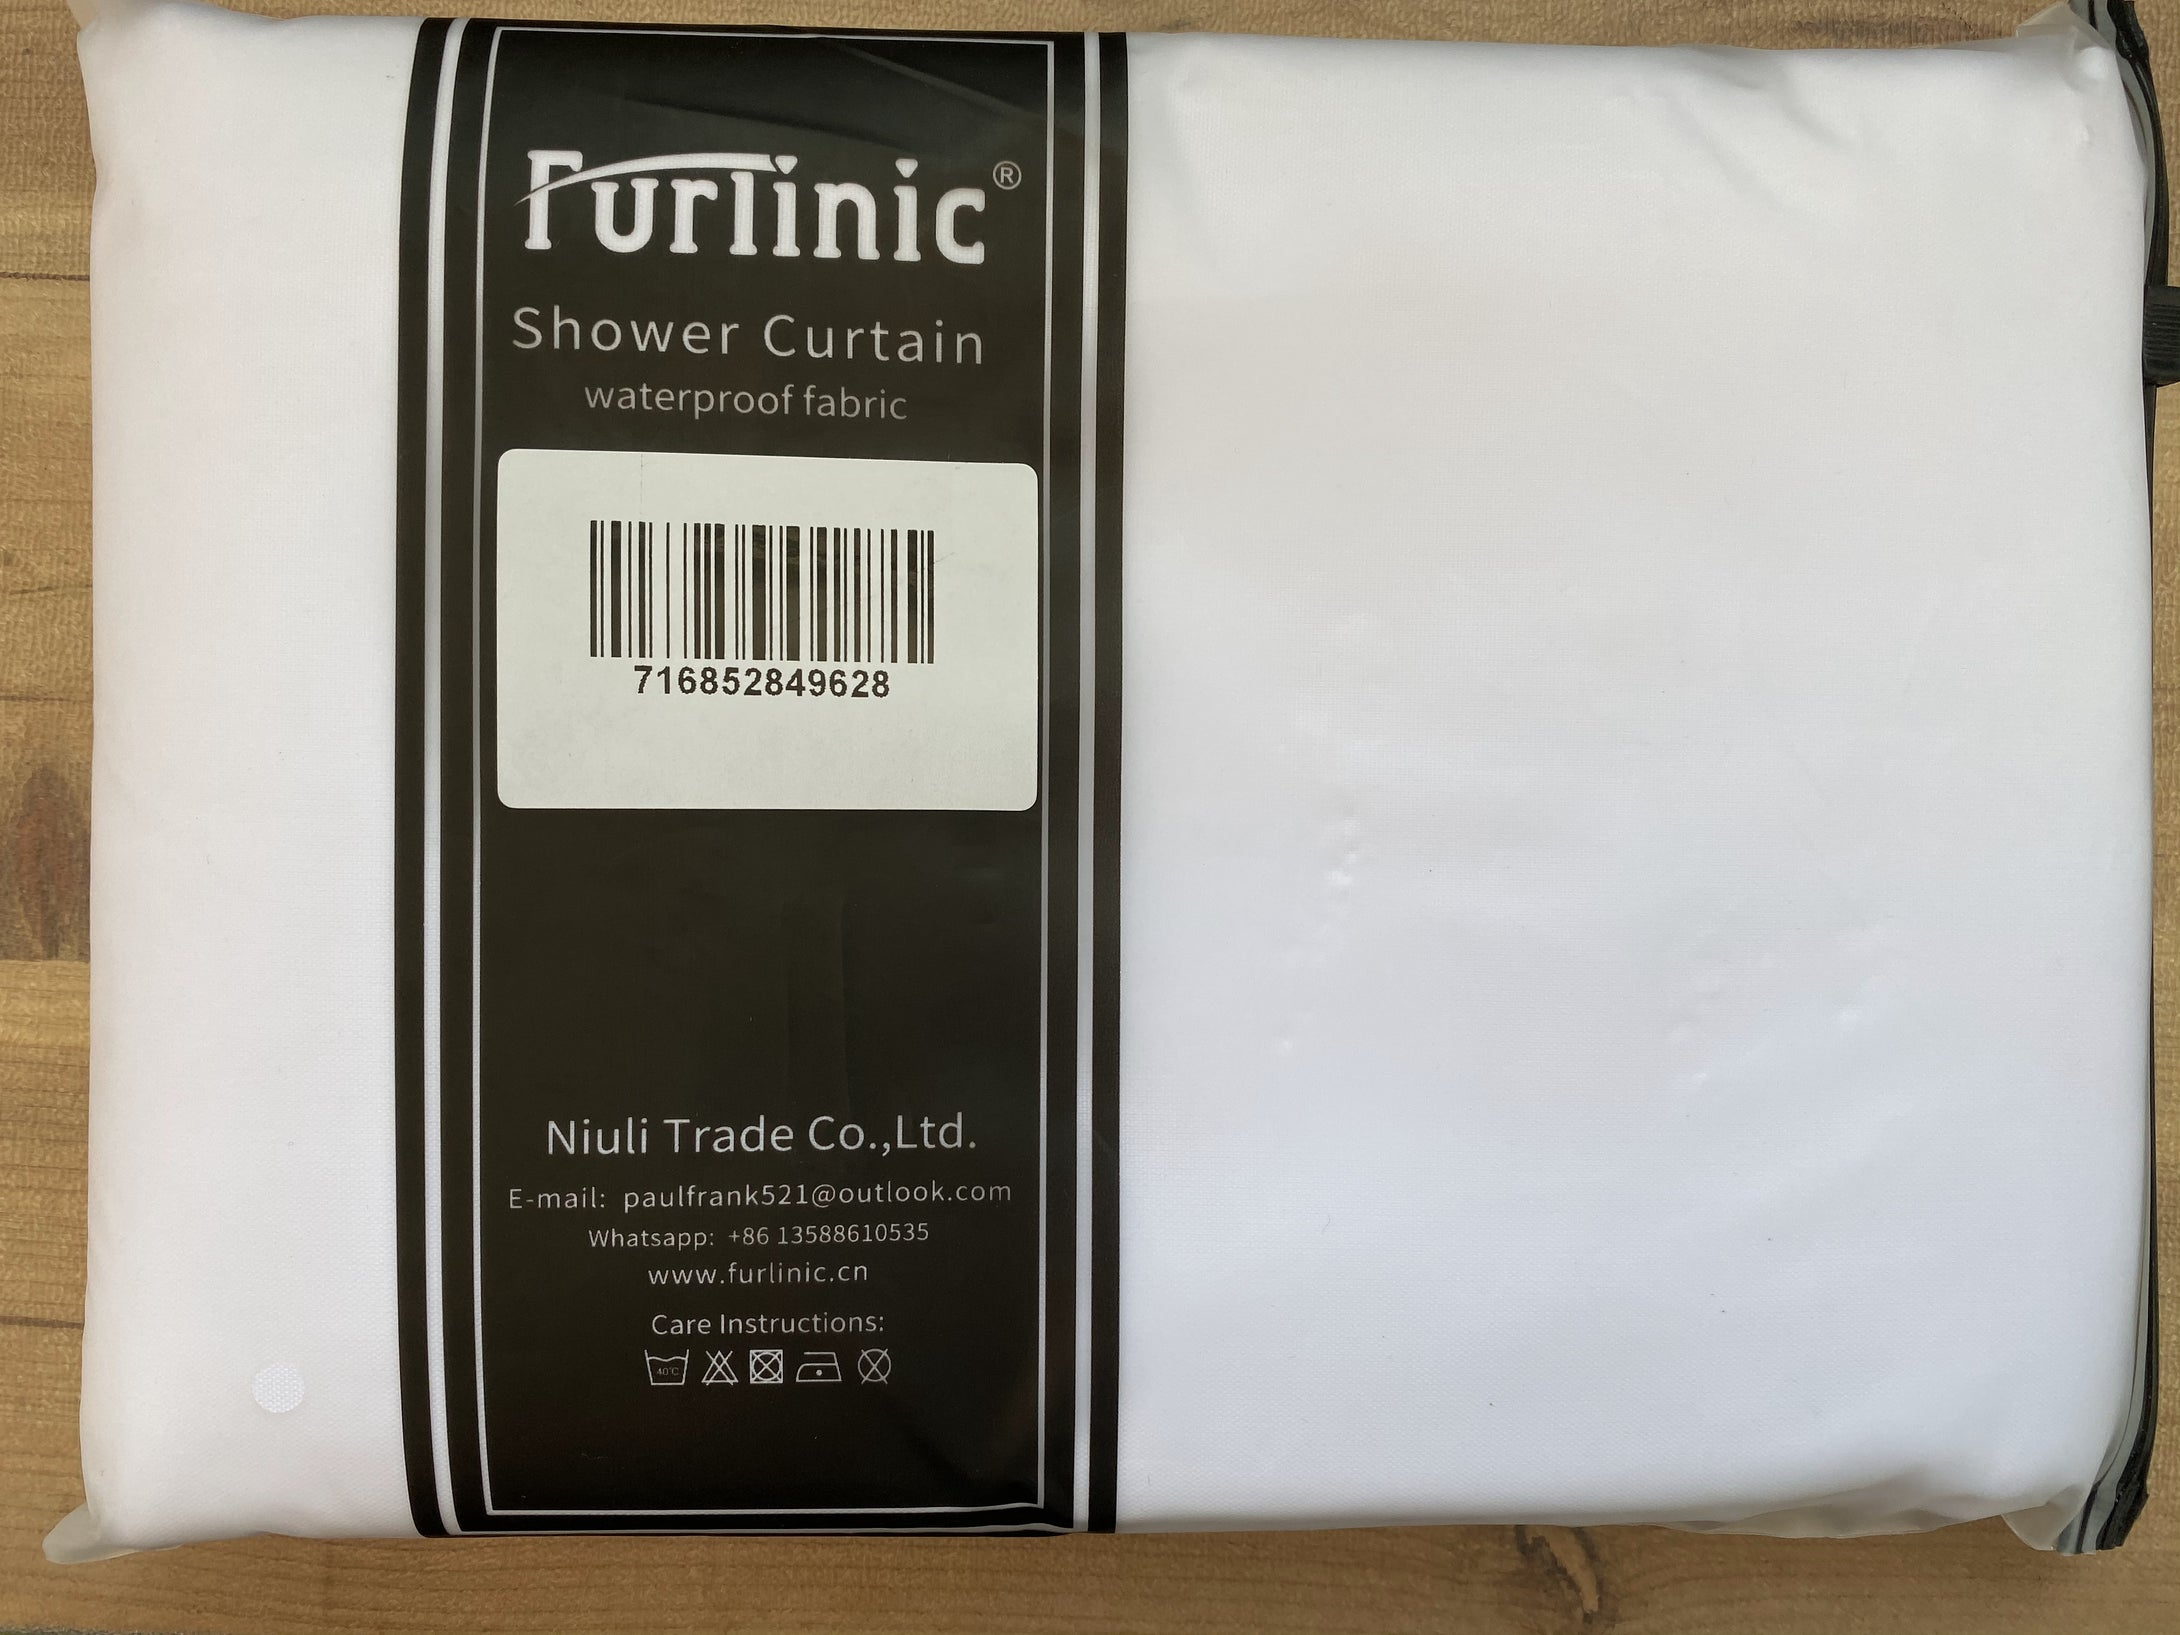 Furlinic White Hookless Shower Curtain Mildew Resistant and Waterproof Fabric, Weighted Curtains for Wetroom or Bathroom-35x72 Inch.